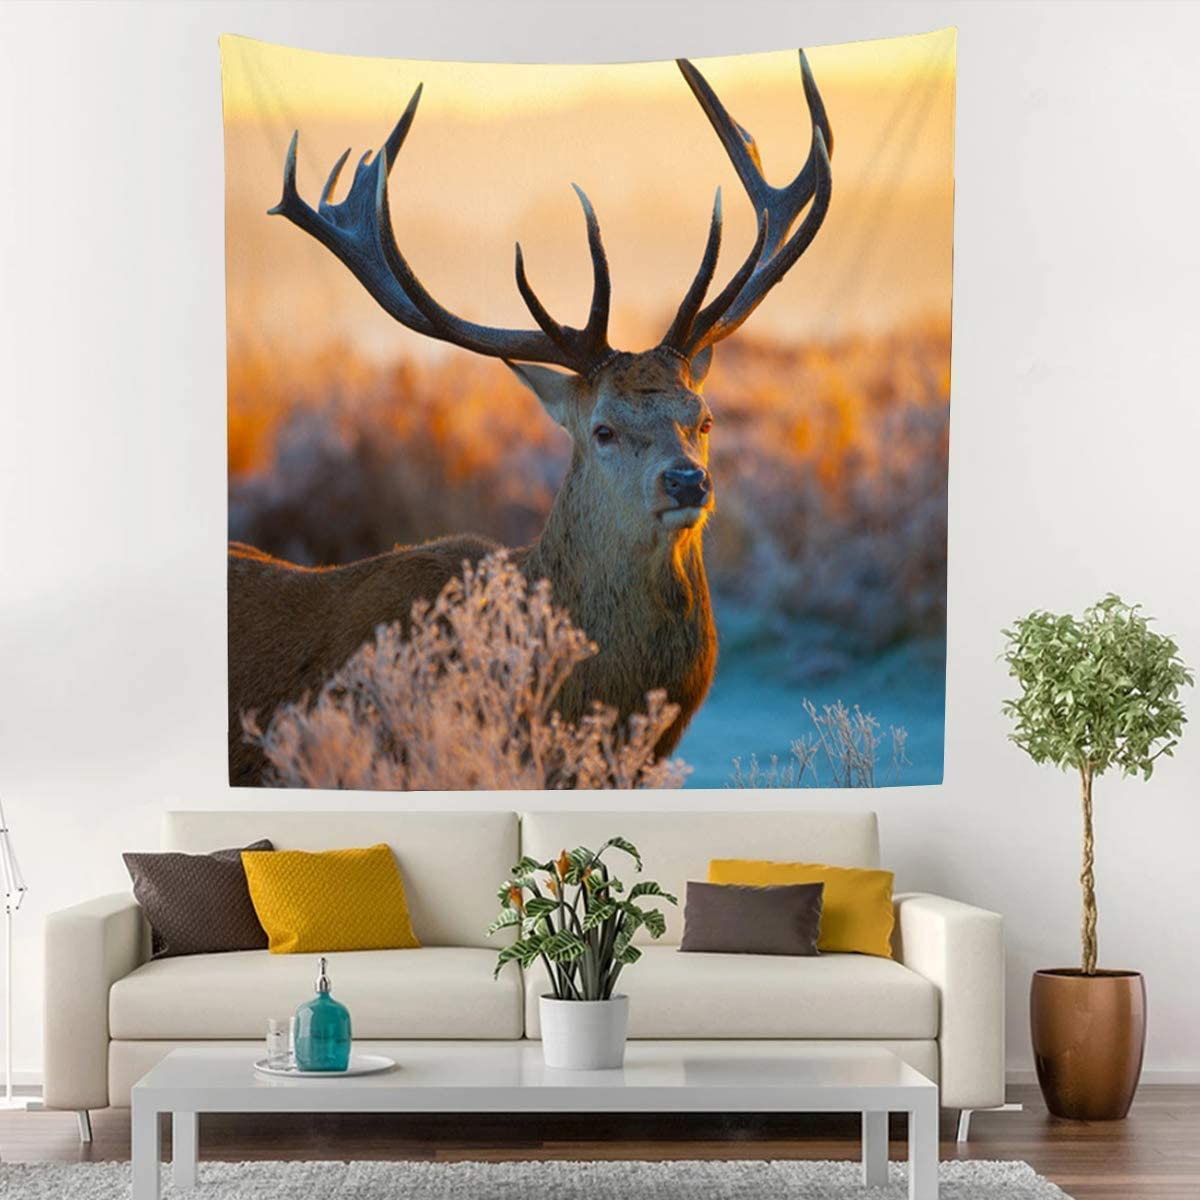 Custom Wall Tapestry Unload Your Images and Print Photo Text, Custom Tapestry Anything for your Friends and Family, Suitable for Decor Living Room and Bedroom Birthday Wedding Events 80 W x 60 L